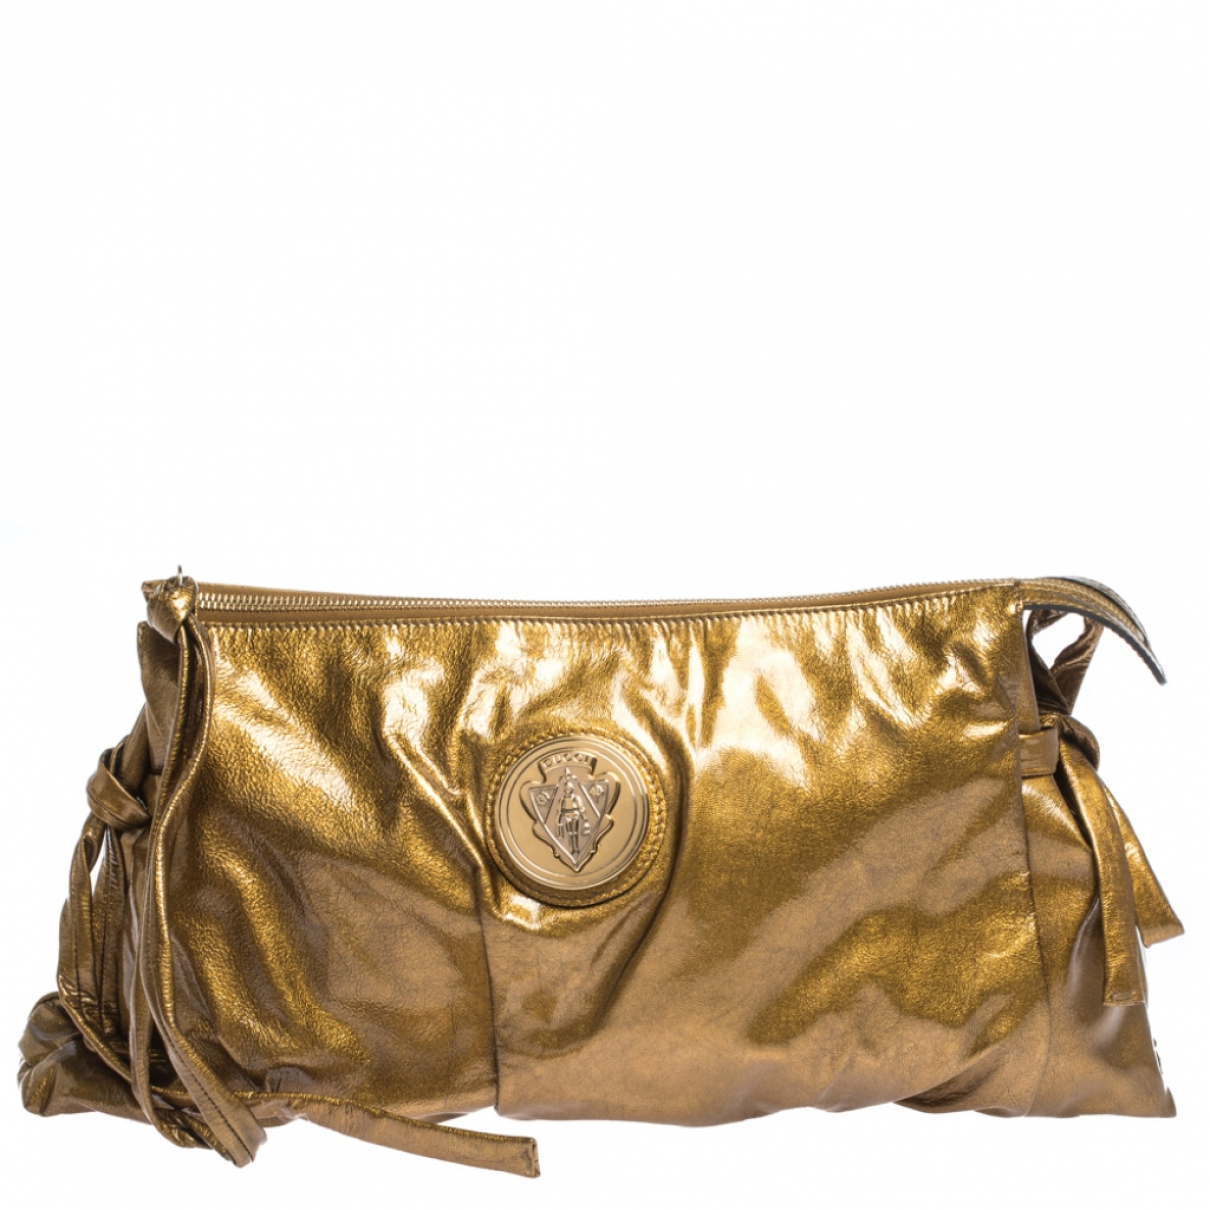 Gucci Hysteria Gold Patent leather Clutch bag for Women N